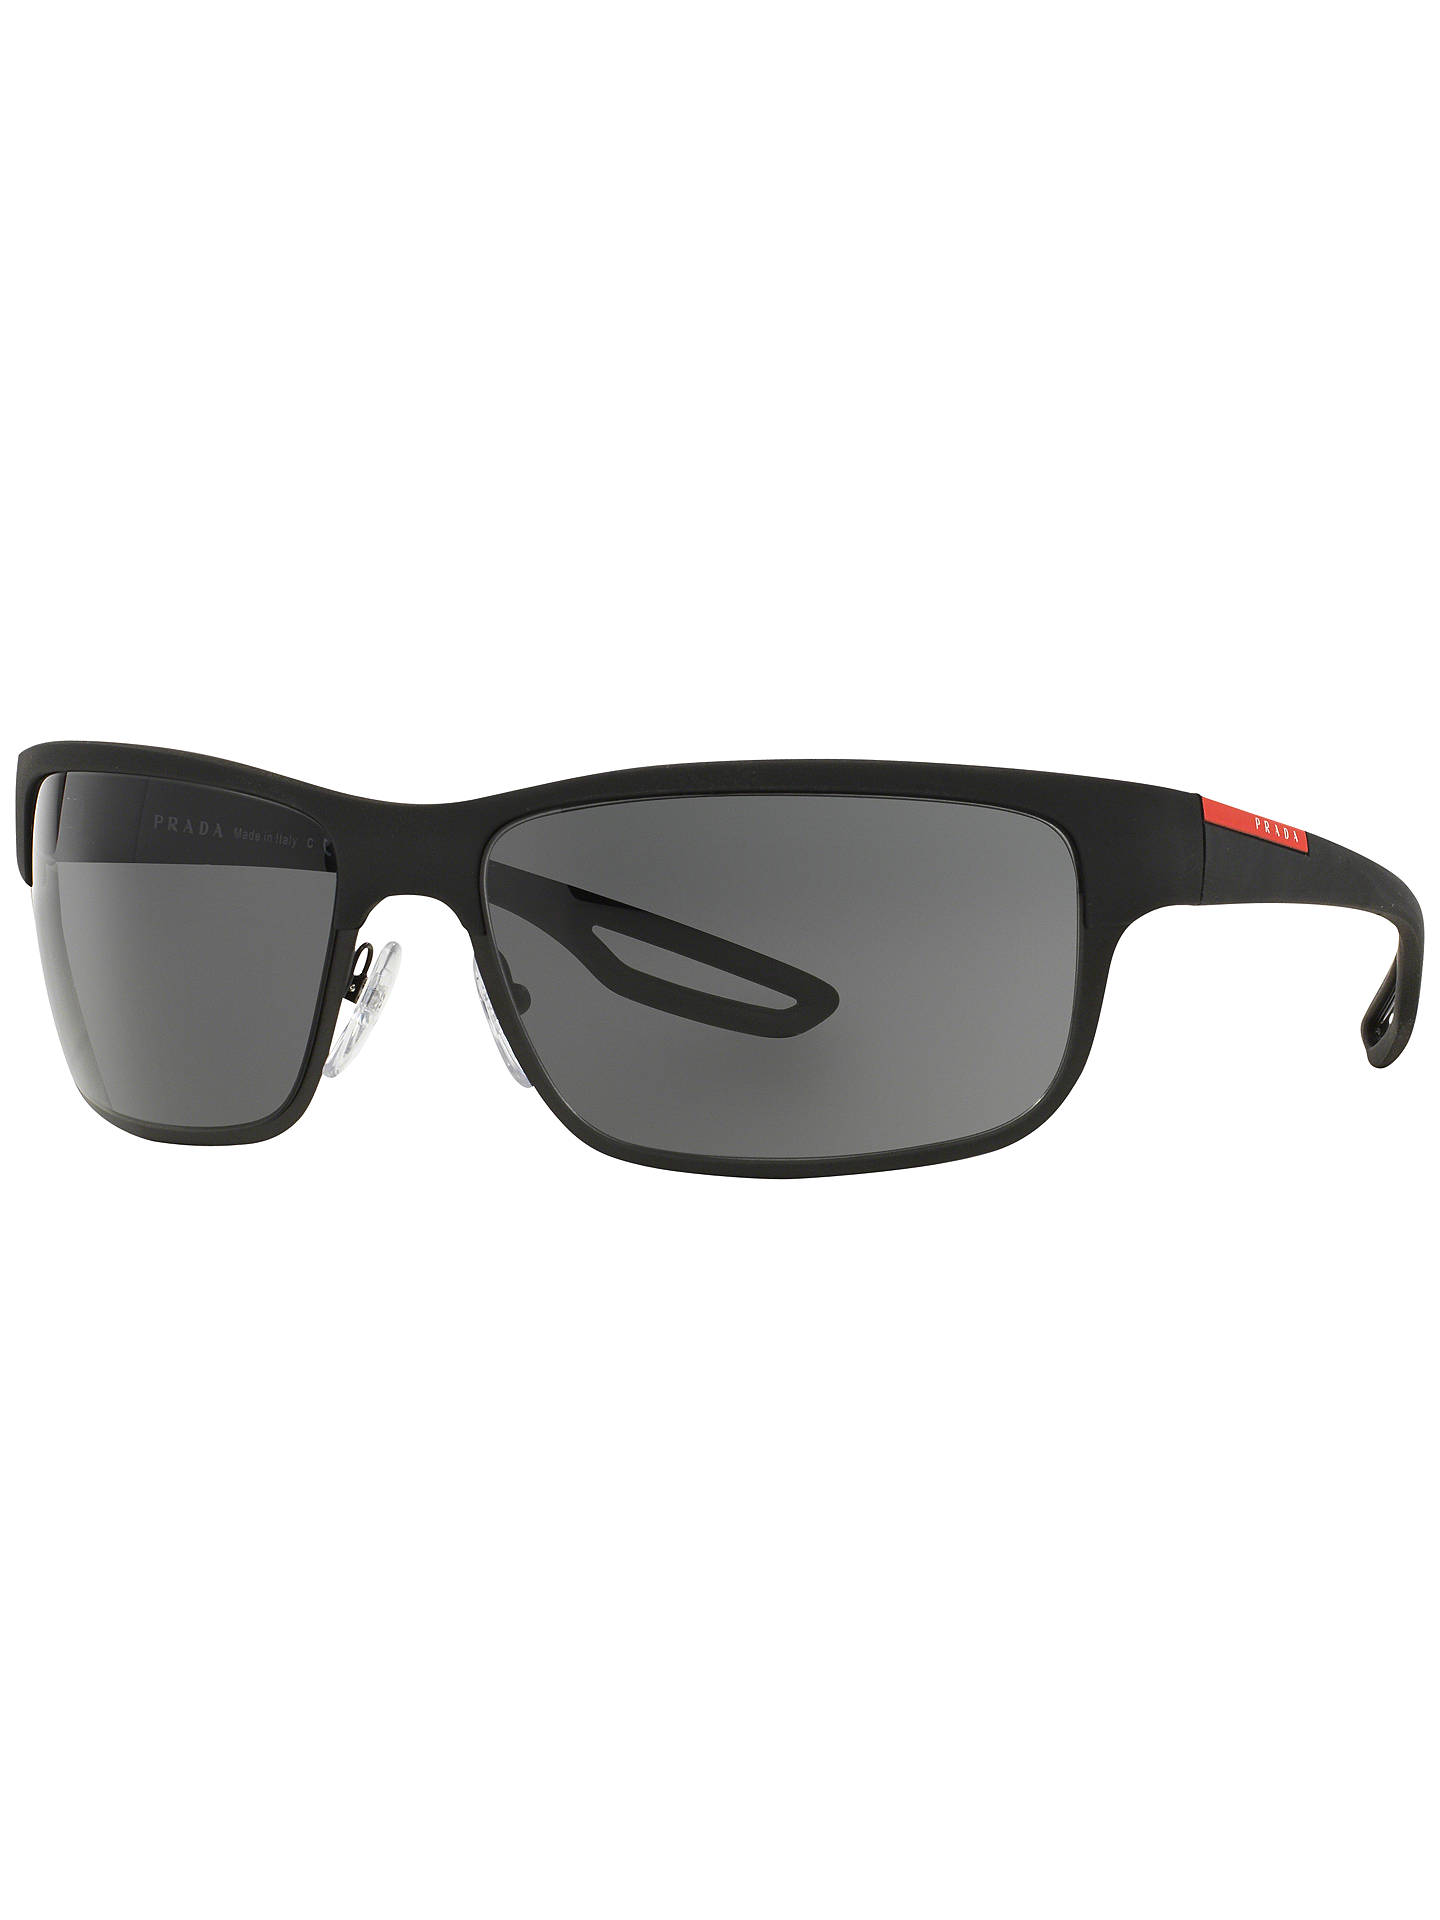 75c099c0d5 Buy Prada Linea Rossa PS 50QS Rectangular Sunglasses